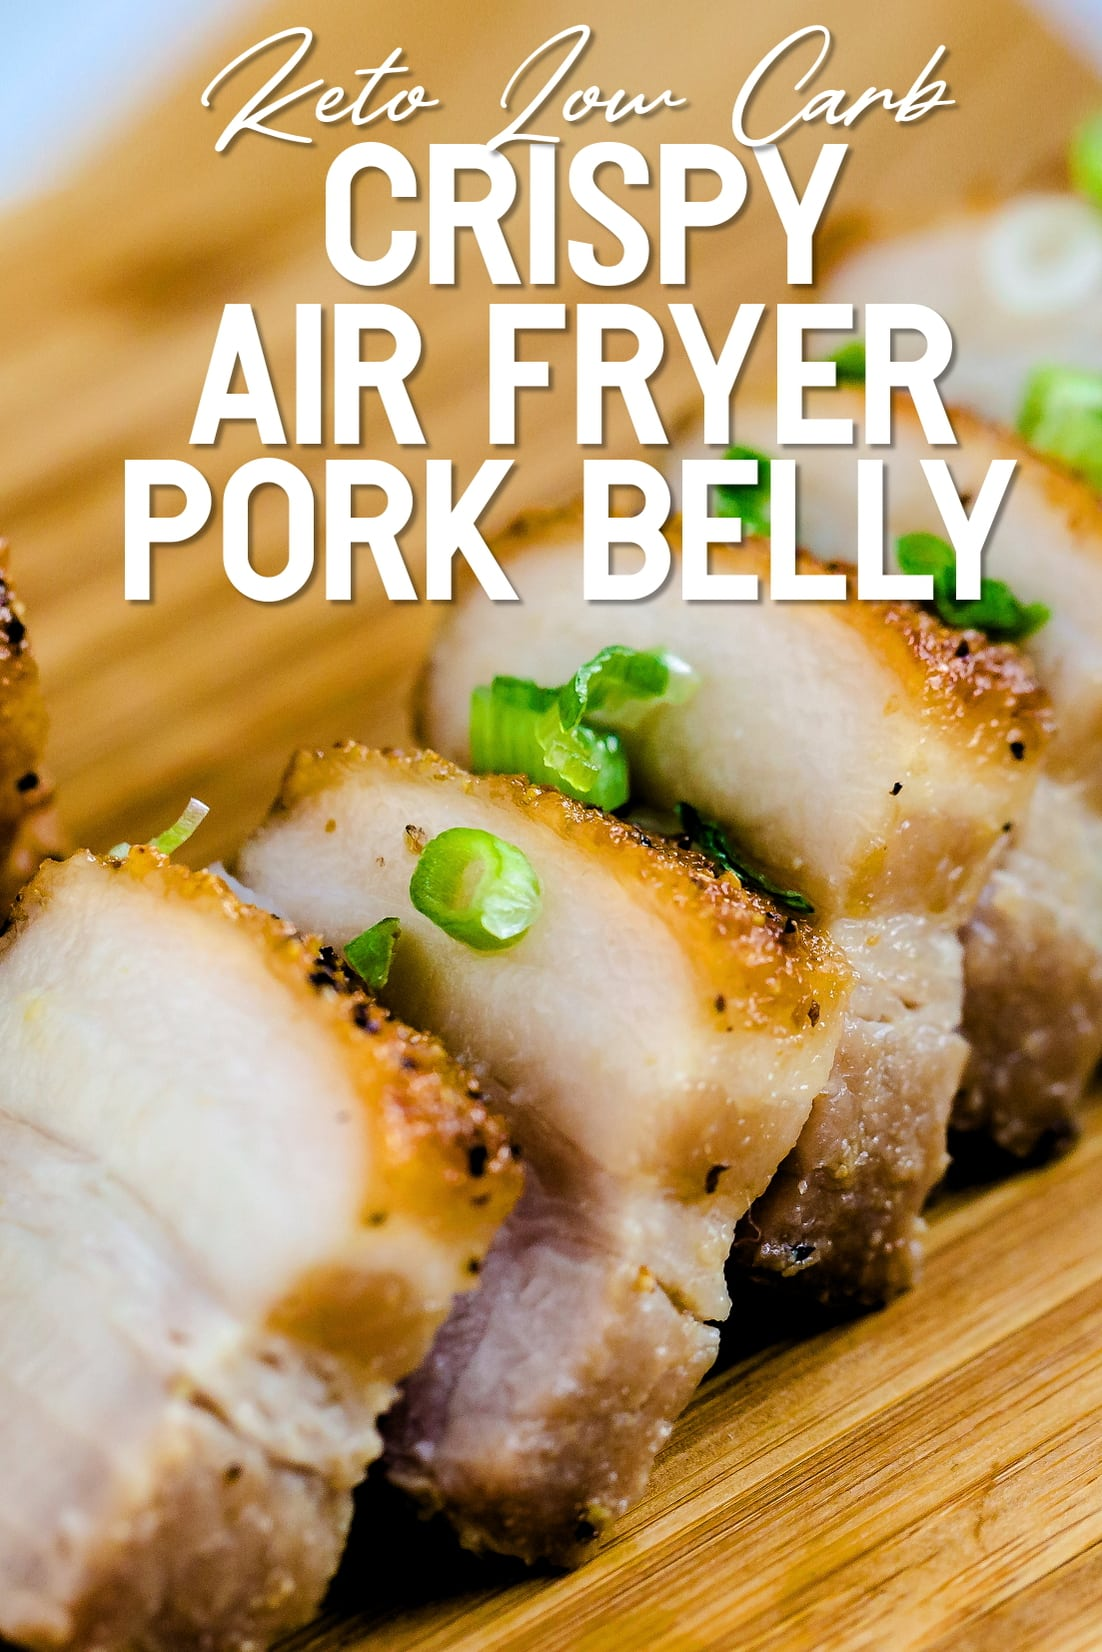 Crispy Pork Belly lined up on wooden plank with green onions sprinkled